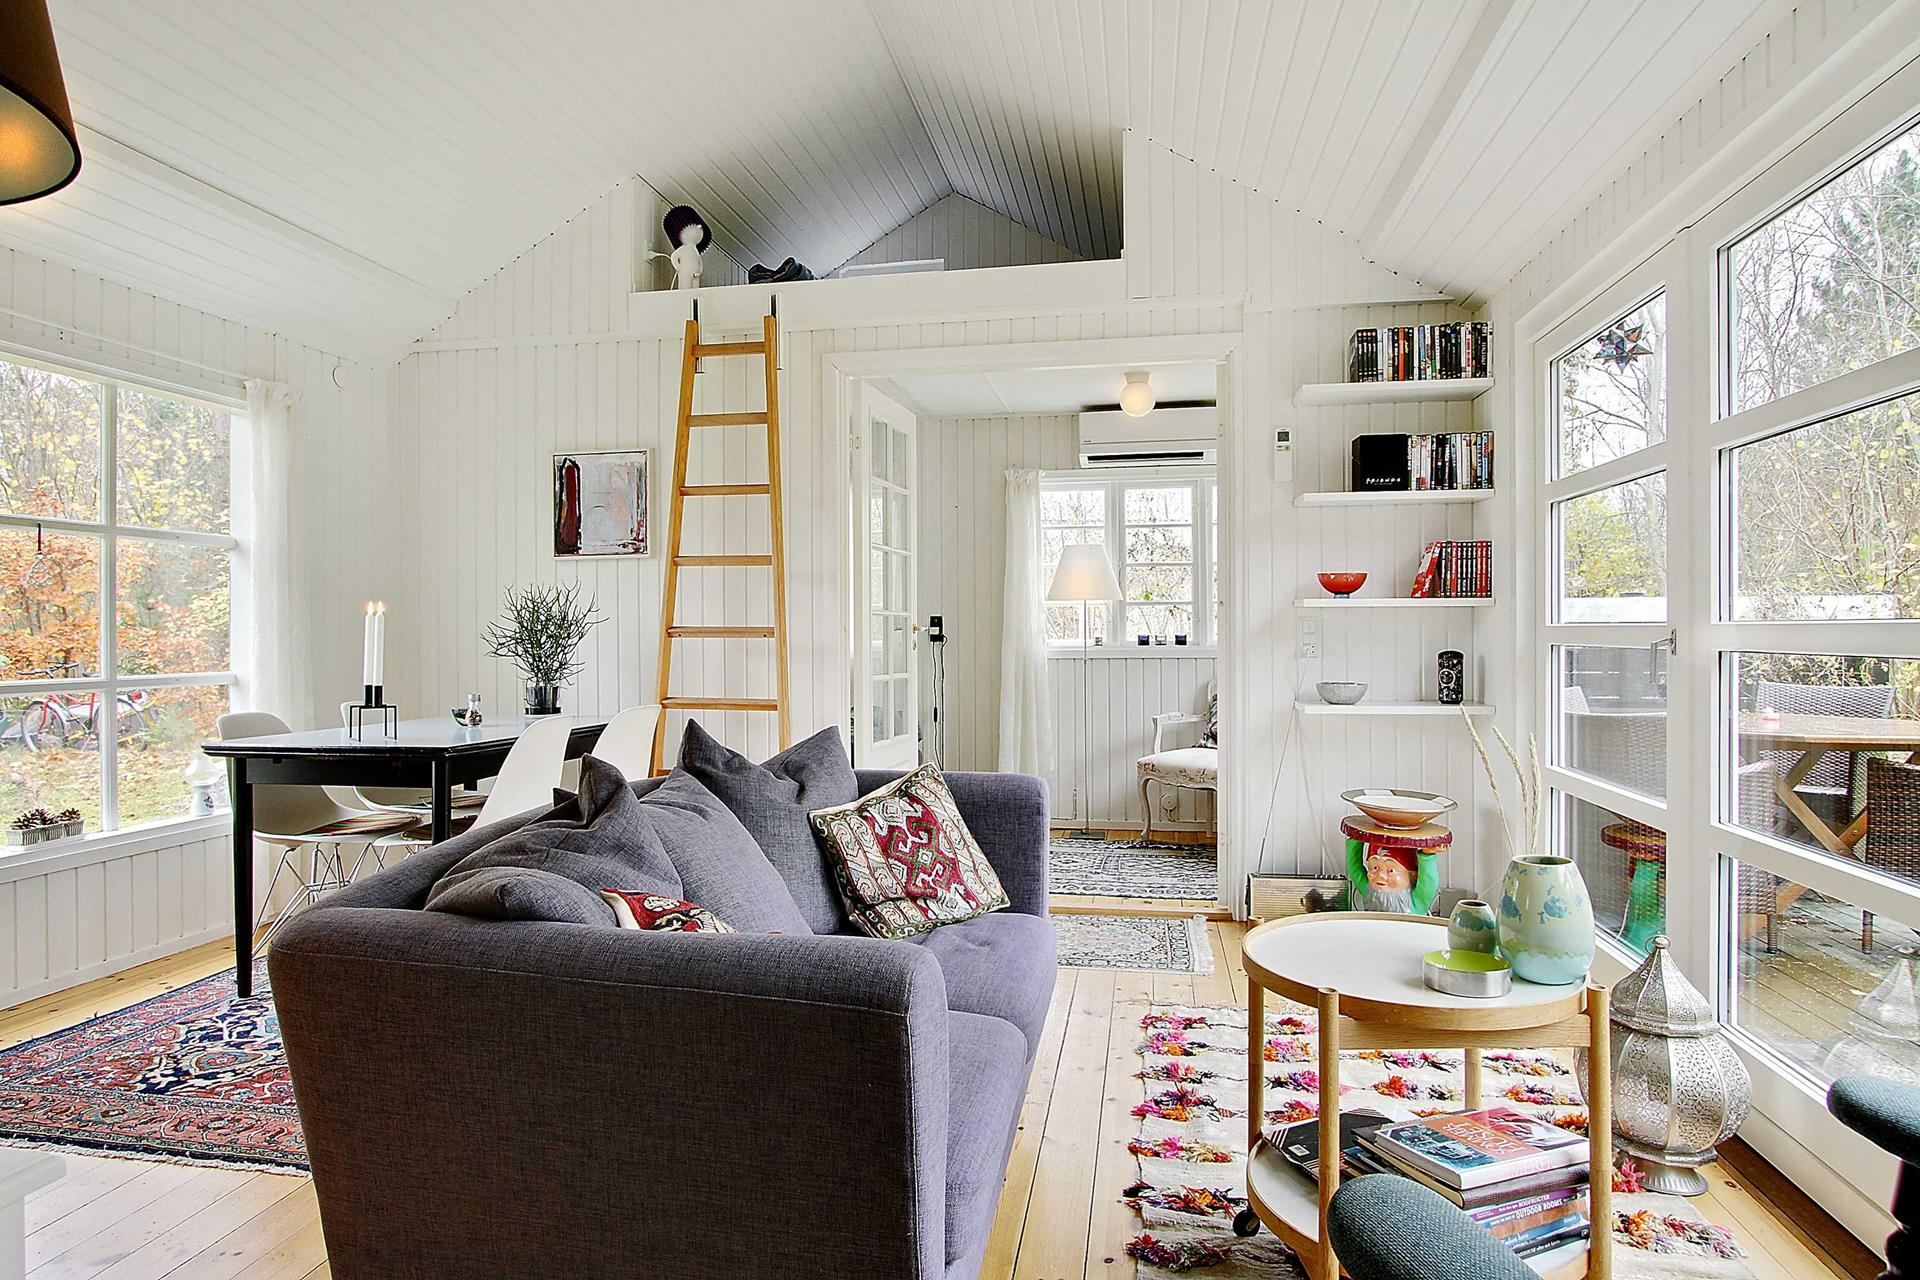 Gallery: Black and white Danish summerhouse | Small House Bliss